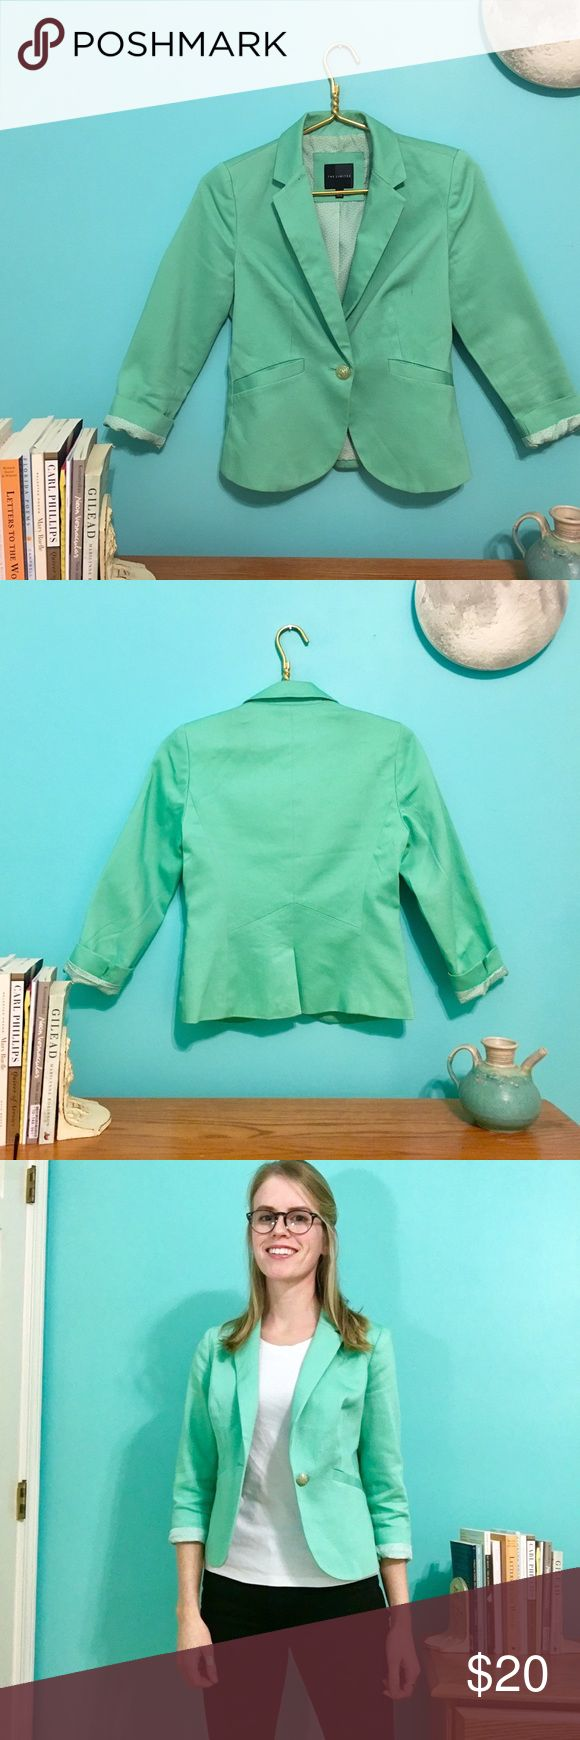 The Limited mint green blazer This mint-green blazer is a personal favorite. It looks great with just about anything, but I love it with black pants. The 3/4 length sleeves keep it fresh. Discounted for the faint marks on the left panel. Dry clean only. The Limited Jackets & Coats Blazers